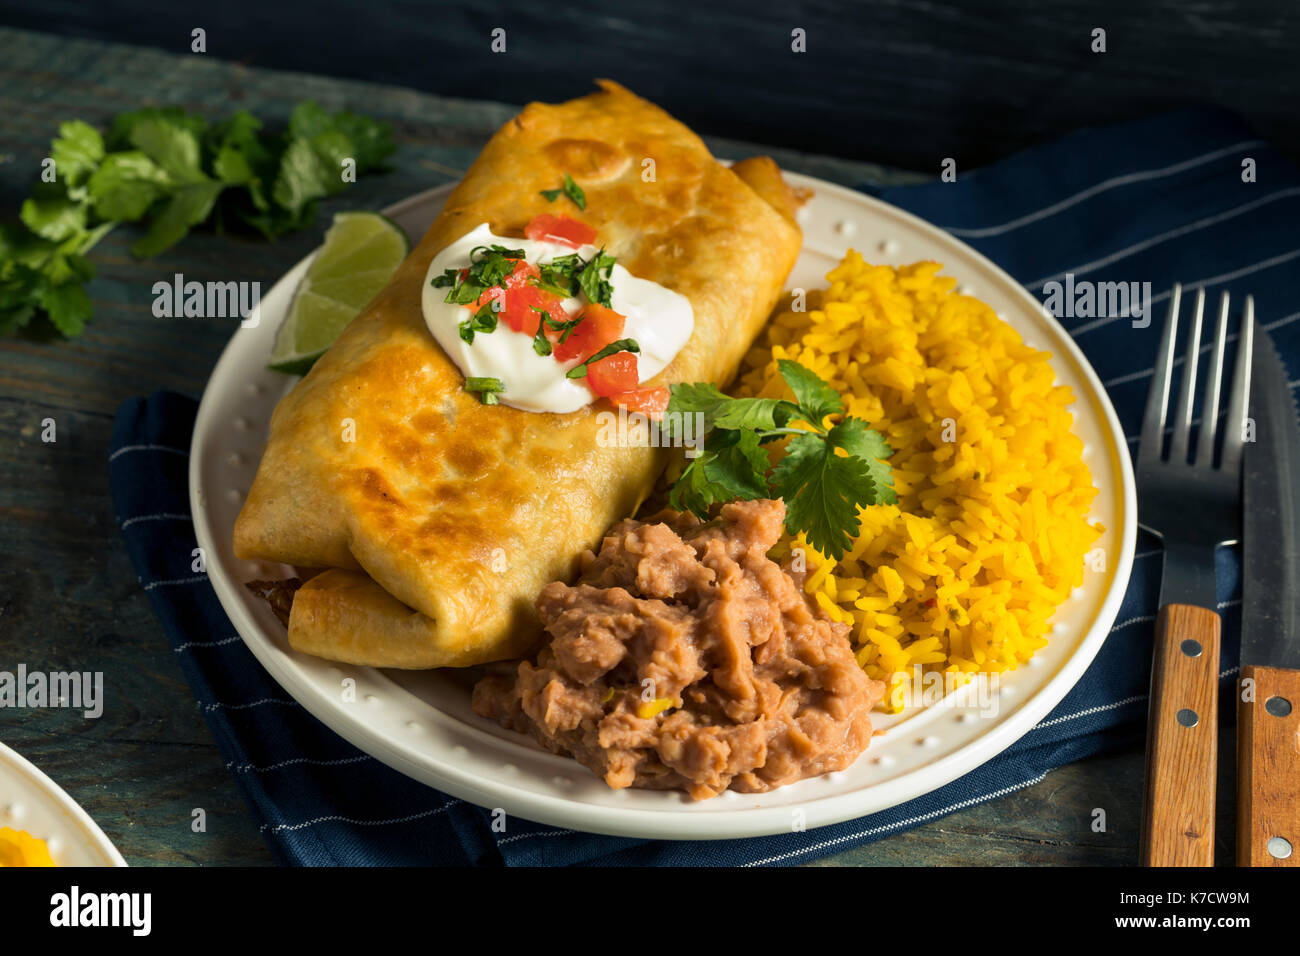 Deep Fried Beef Chimichanga Burrito with Rice and Beans - Stock Image